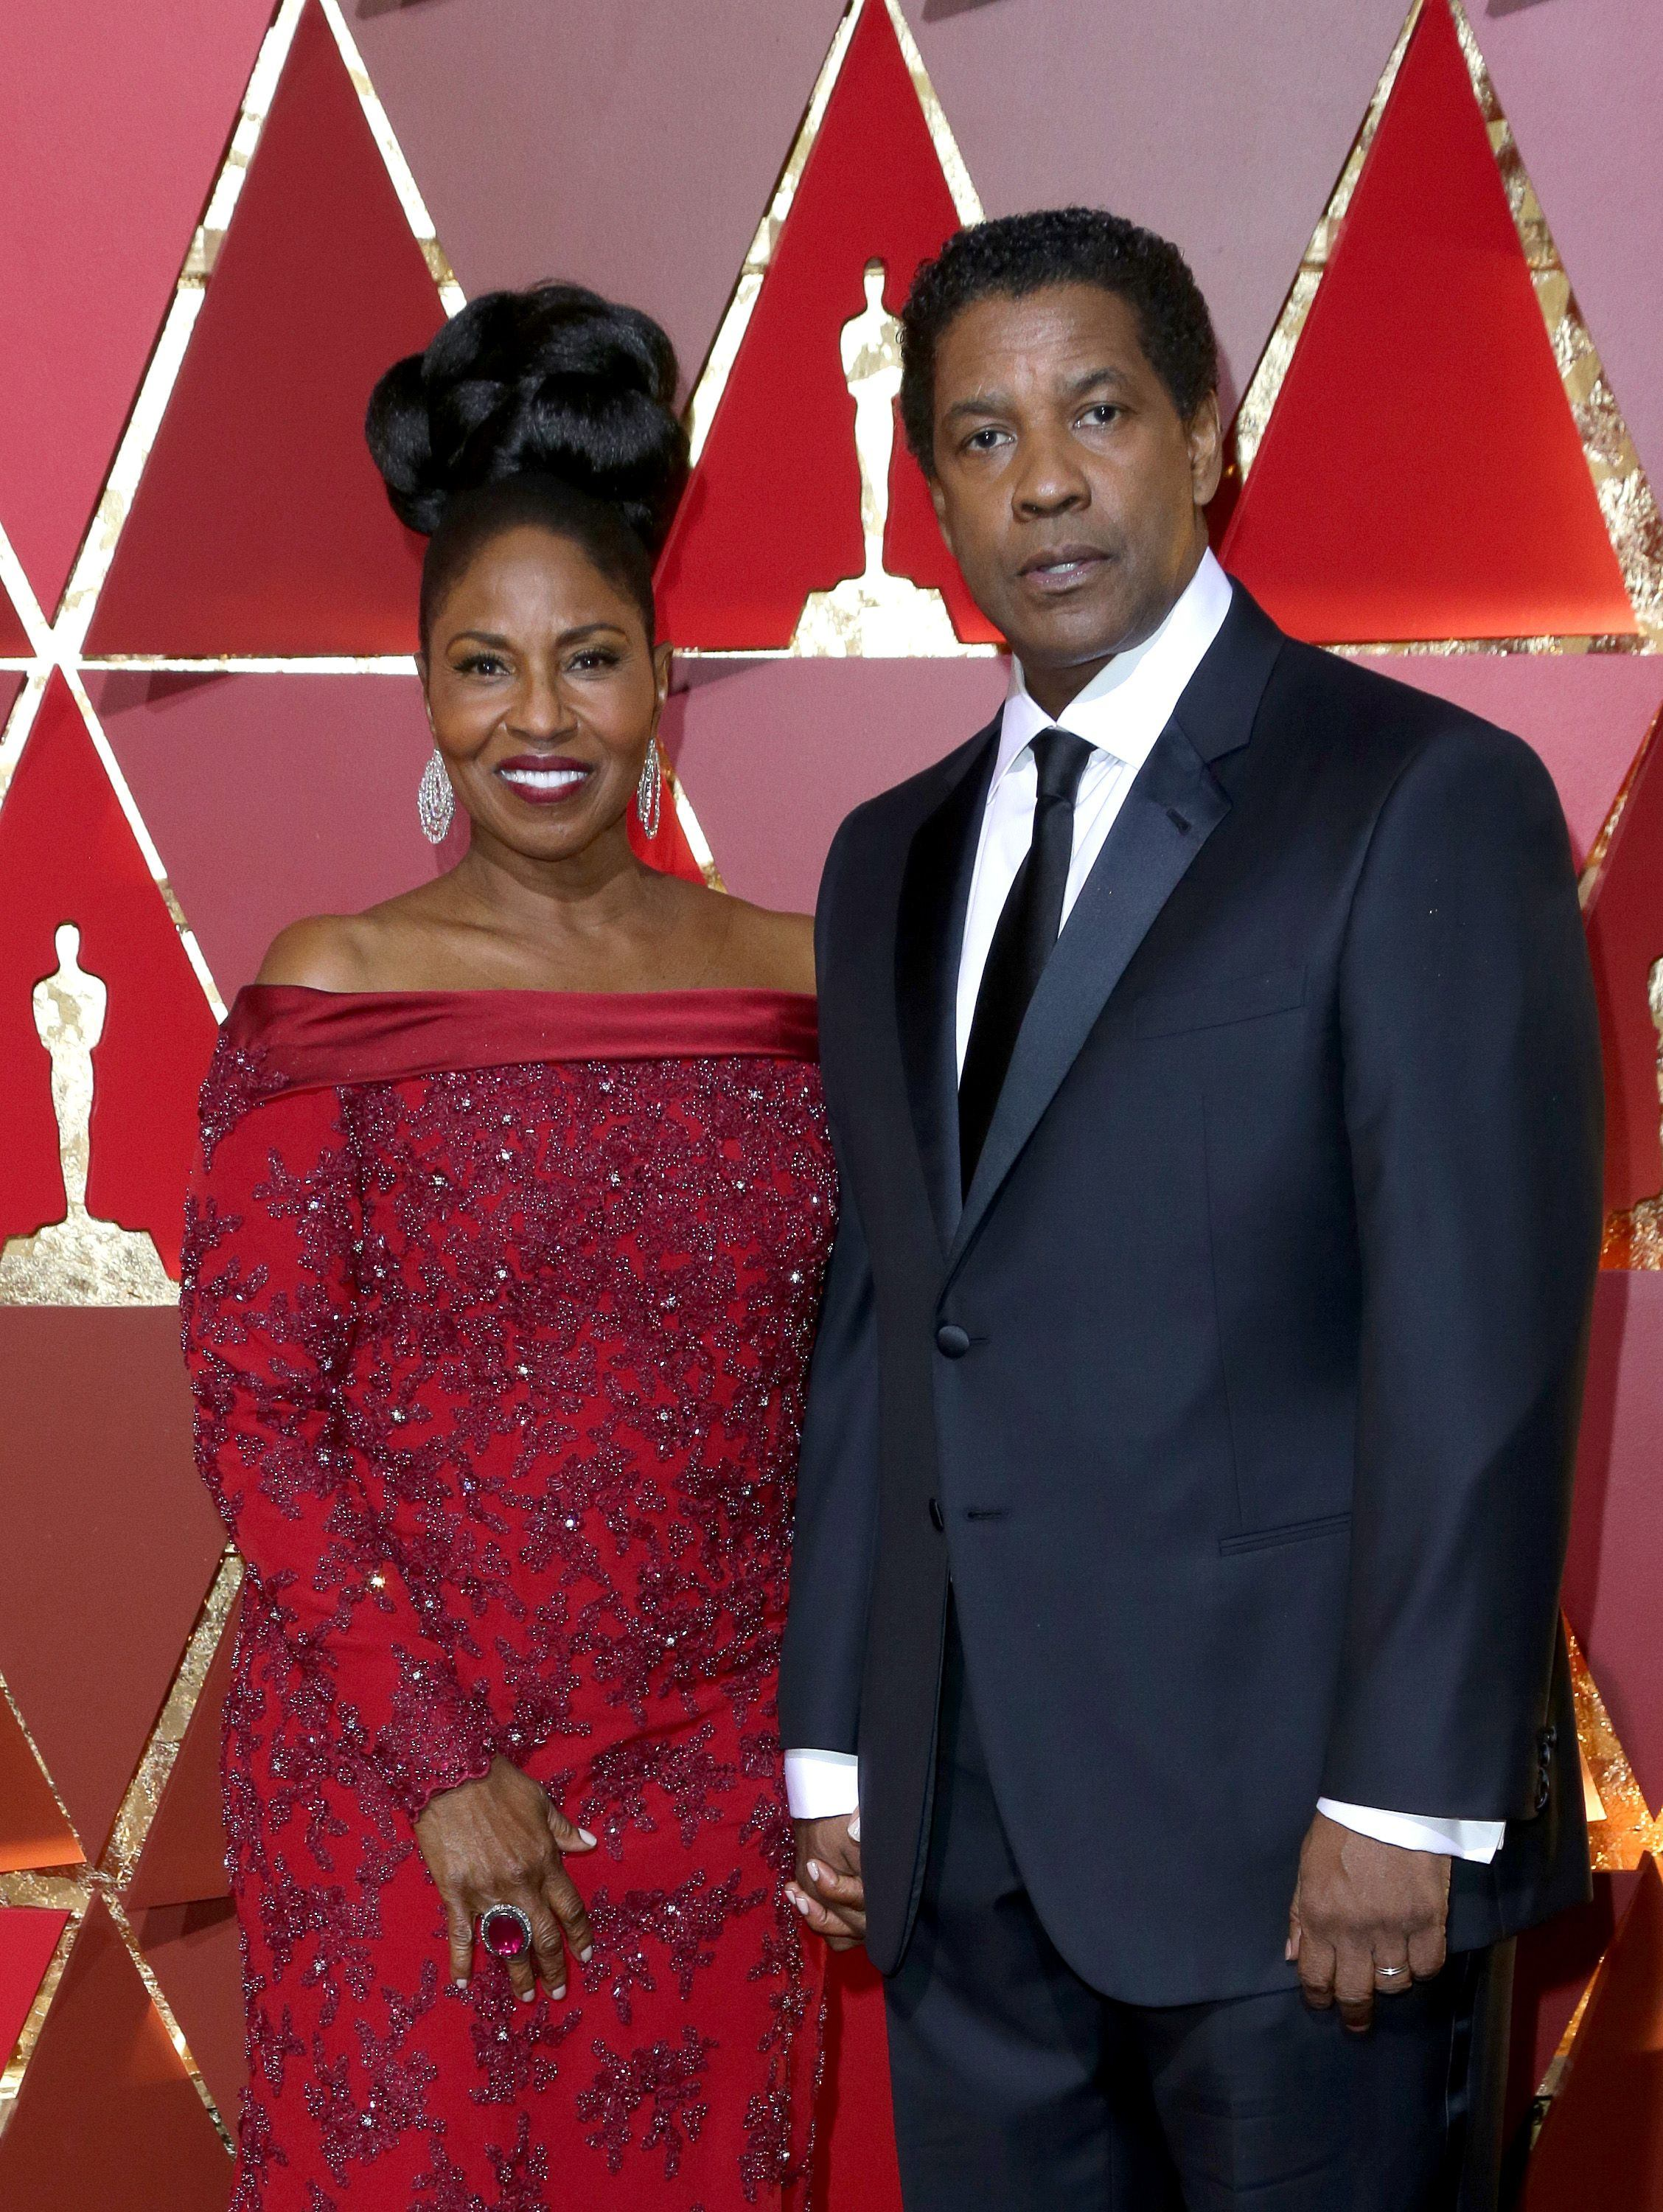 Mandatory Credit: Photo by Jim Smeal/BEI/Shutterstock (8434881nq) Denzel Washington and Pauletta Washington 89th Annual Academy Awards, Arrivals, Los Angeles, USA - 26 Feb 2017